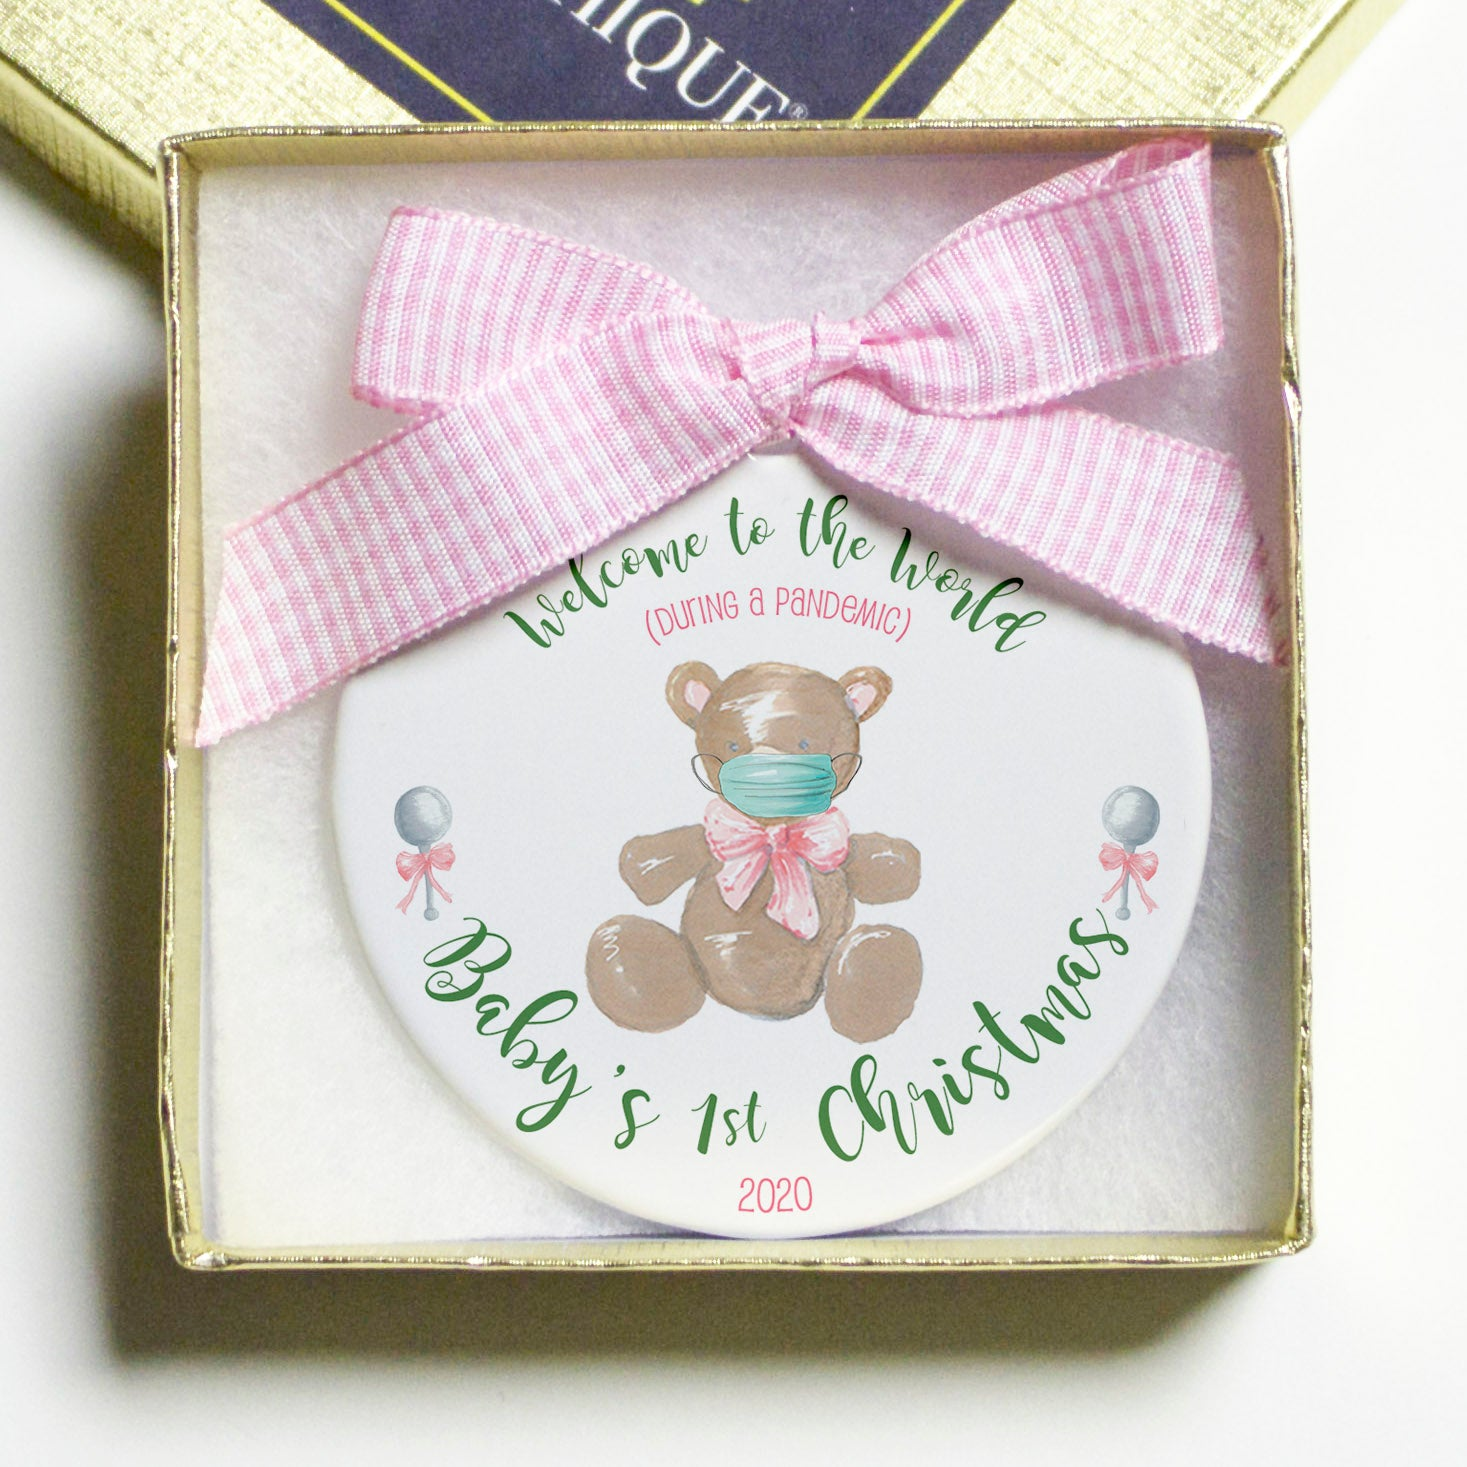 Baby's First Christmas (during a pandemic) Flat Disc Ornament - Pink/Girls